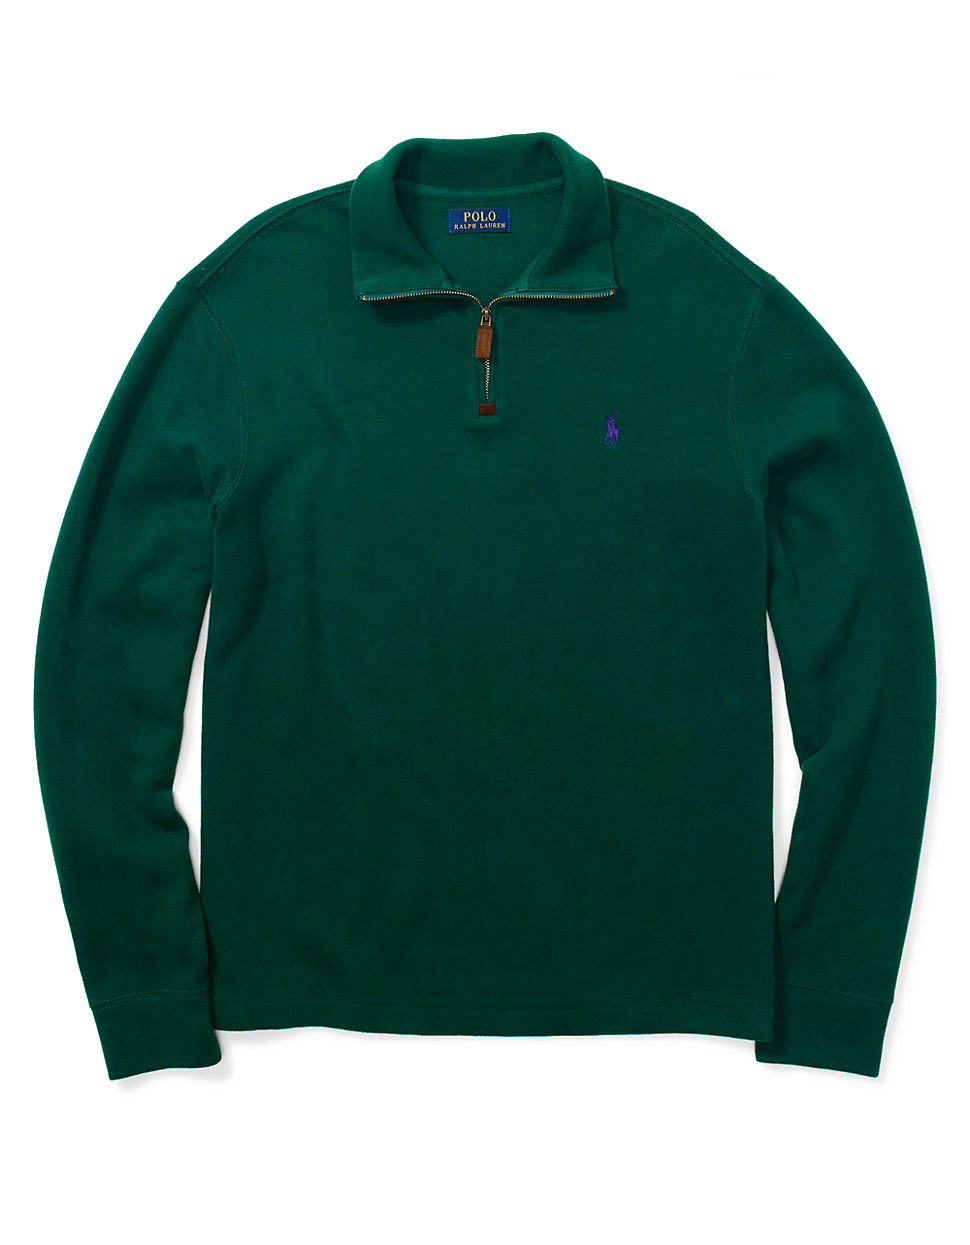 polo ralph lauren french rib half zip pullover in green for men lyst. Black Bedroom Furniture Sets. Home Design Ideas